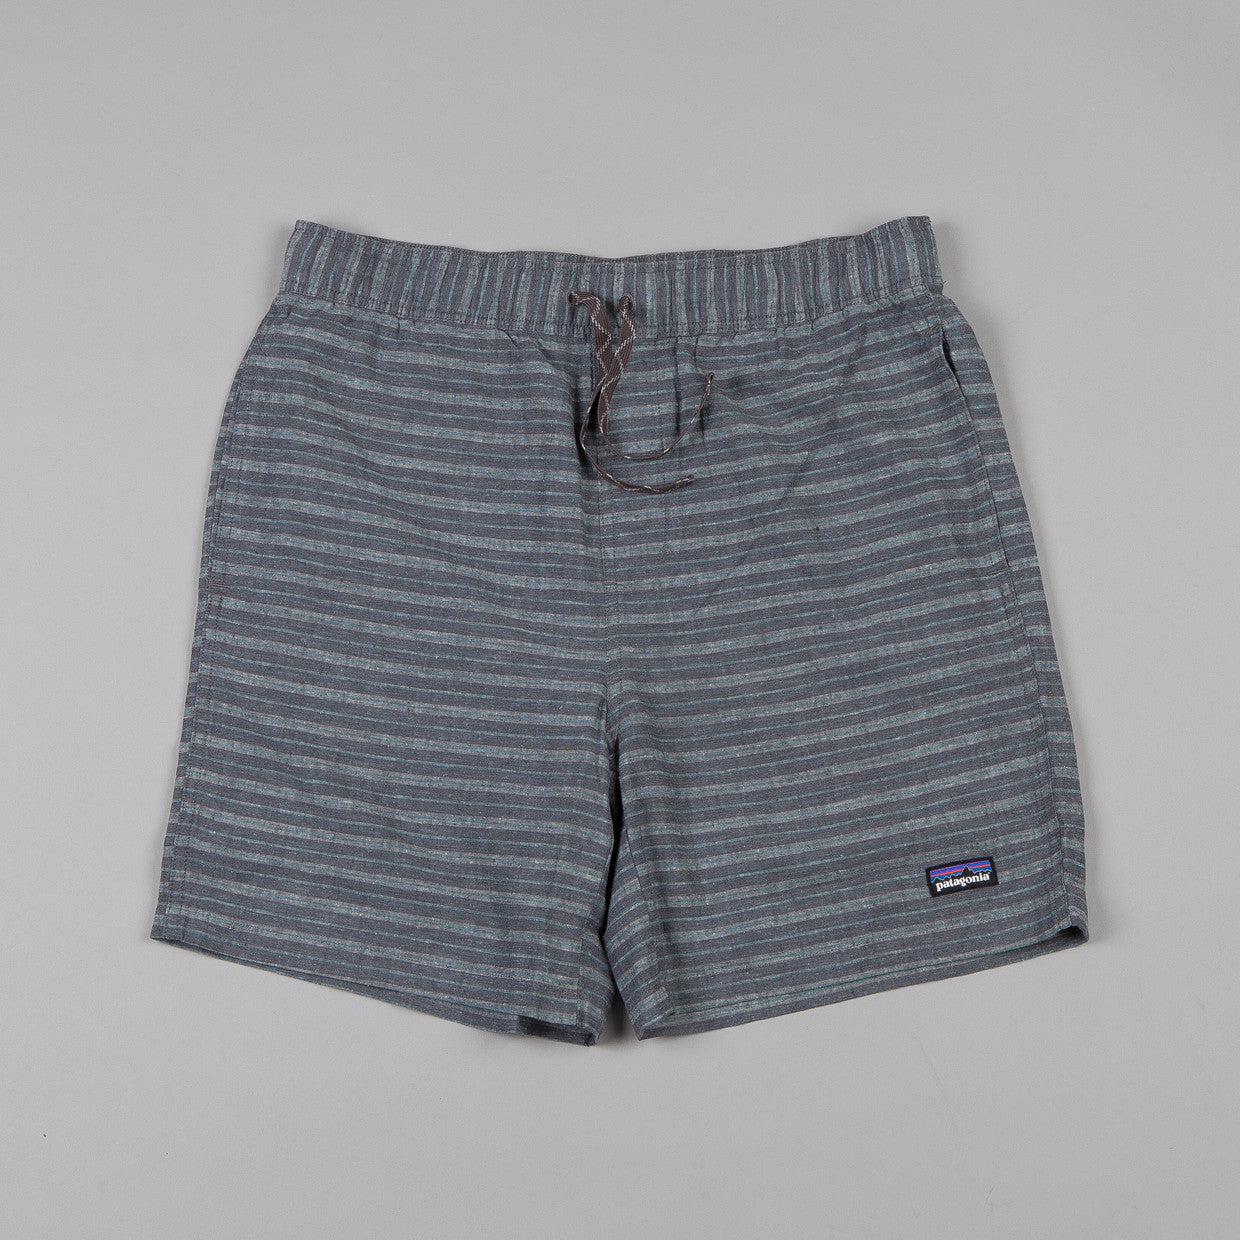 "Patagonia Baggies¢€ž¢ Naturals 7"" Shorts Arroyo Seco : Forge Grey"